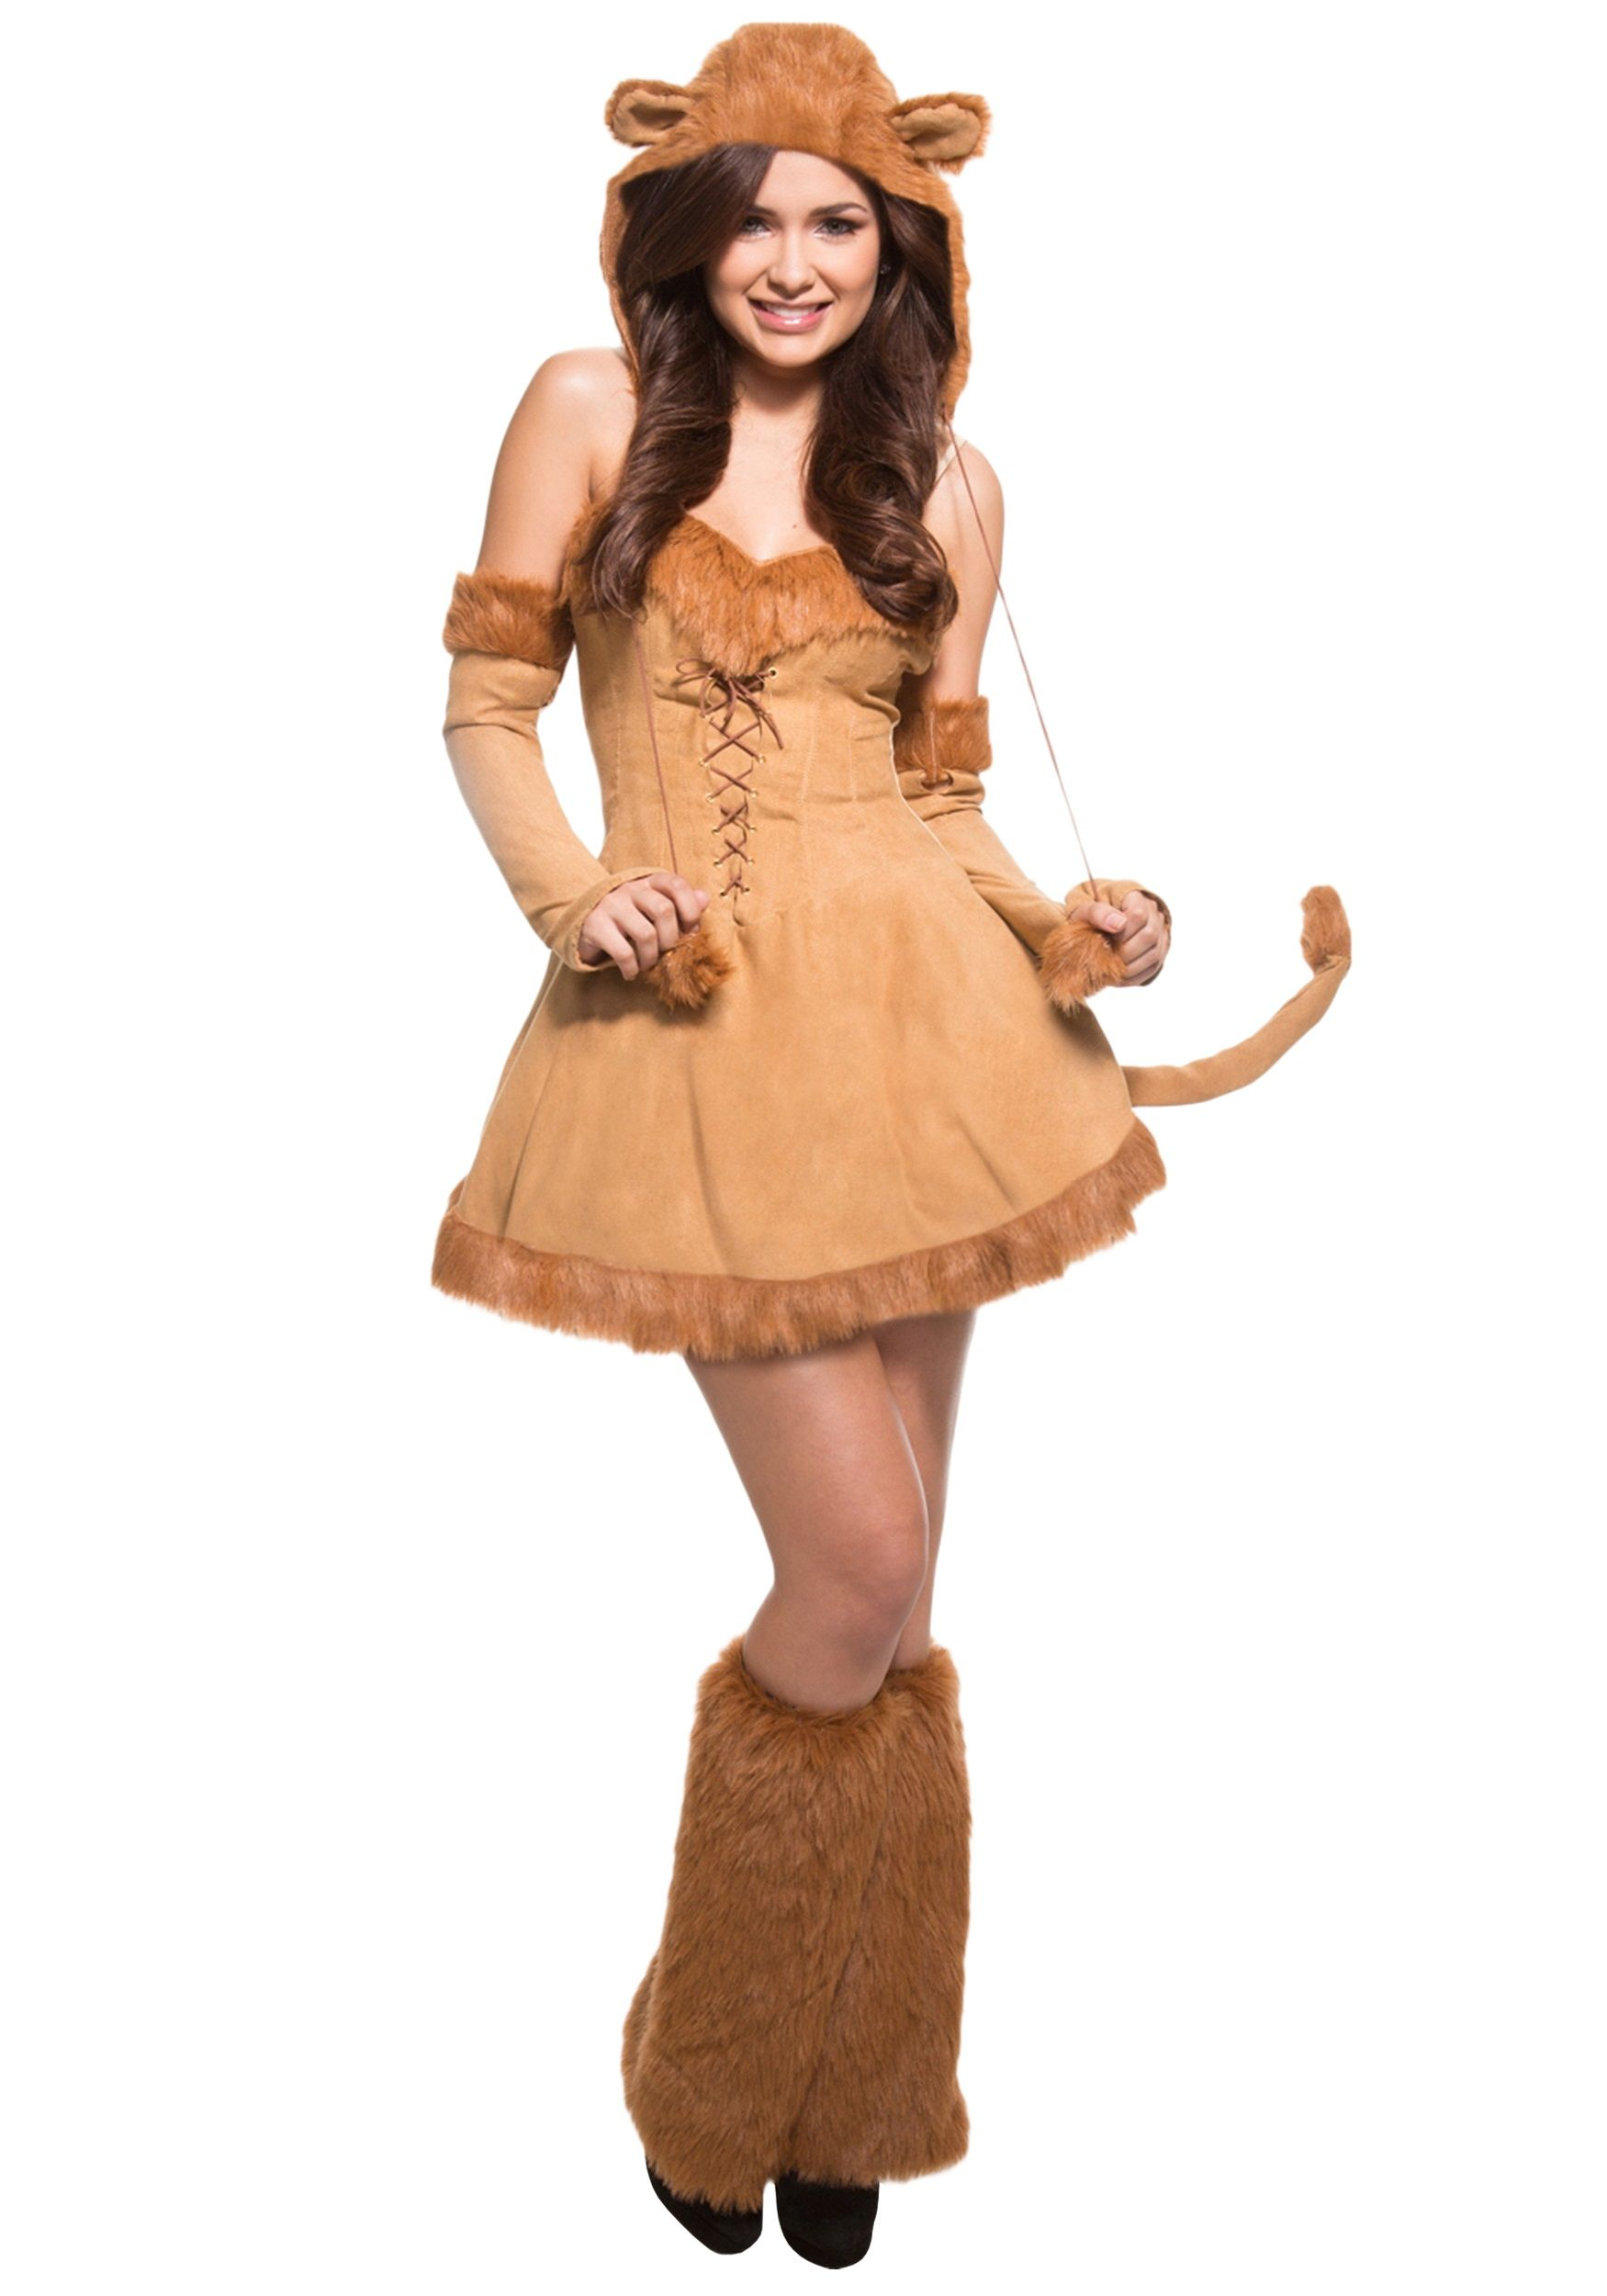 Women's Sexy Lion Costume | Best Costumes and Lion king costume ideas